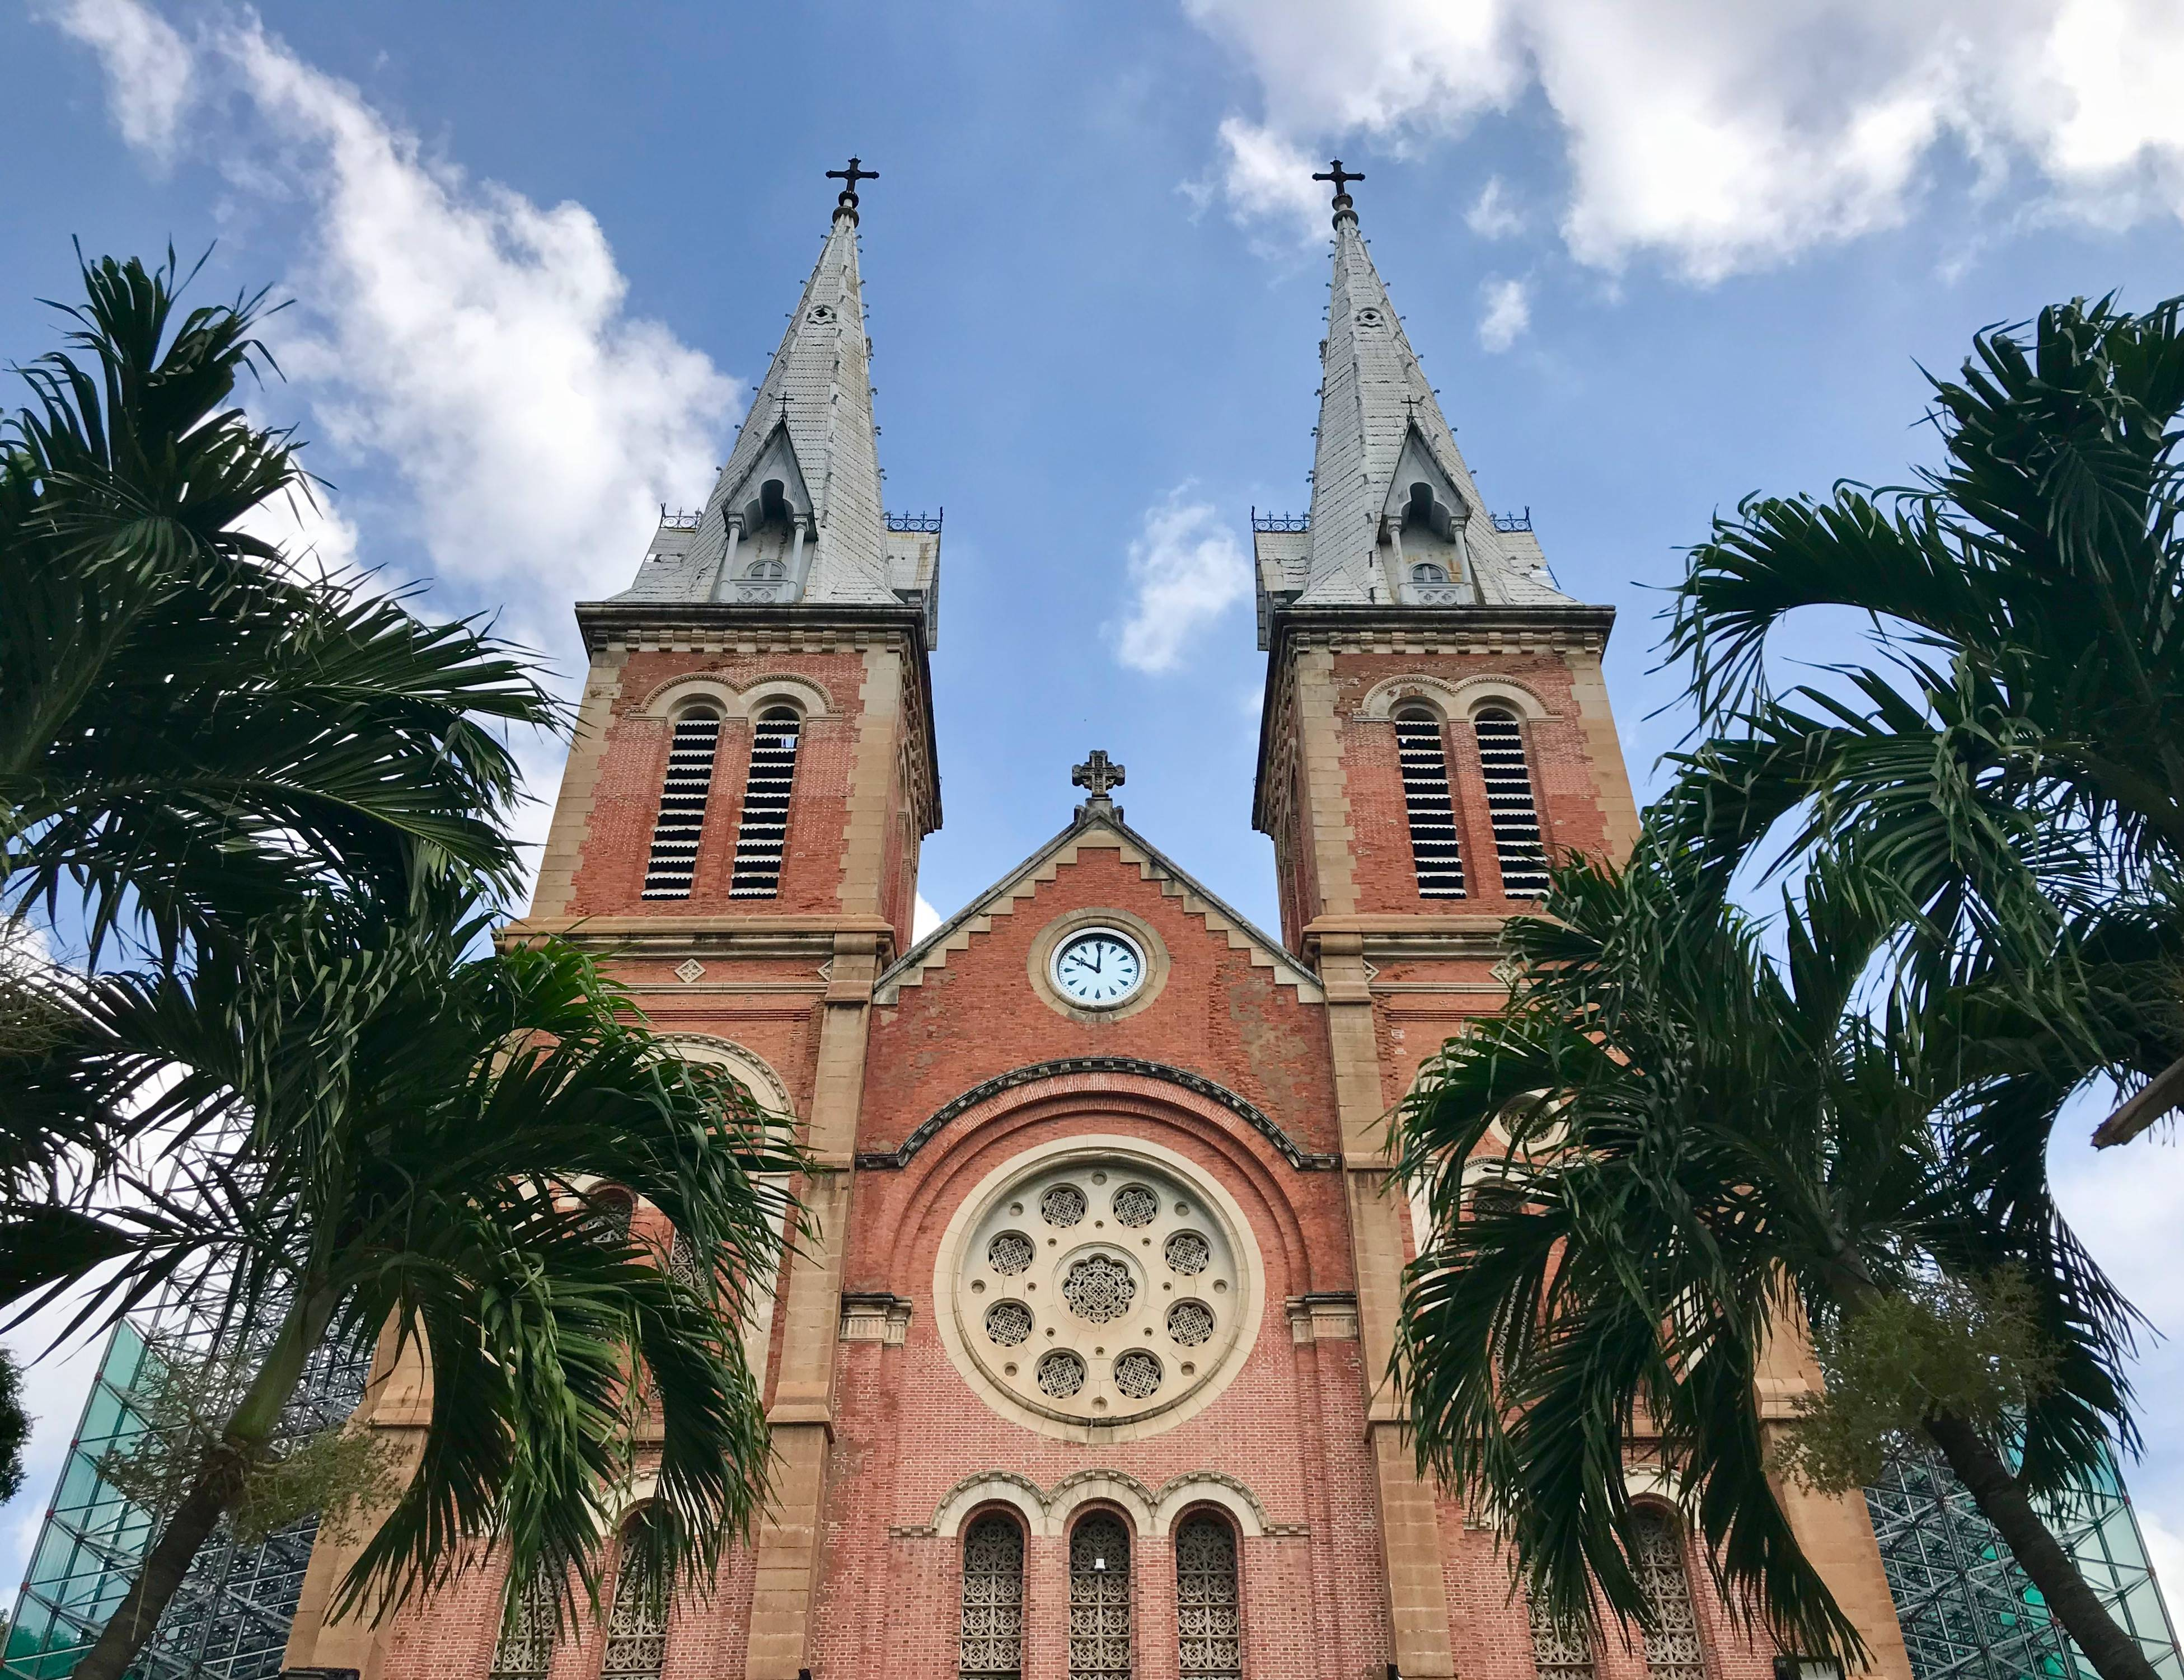 Ho Chi Minh City is the largest city in Vietnam itself with 7 important sites to see. While there, be sure to pamper yourself a bit at Fusion Suites Saigon! Read more at www.thefivefoottraveler.com